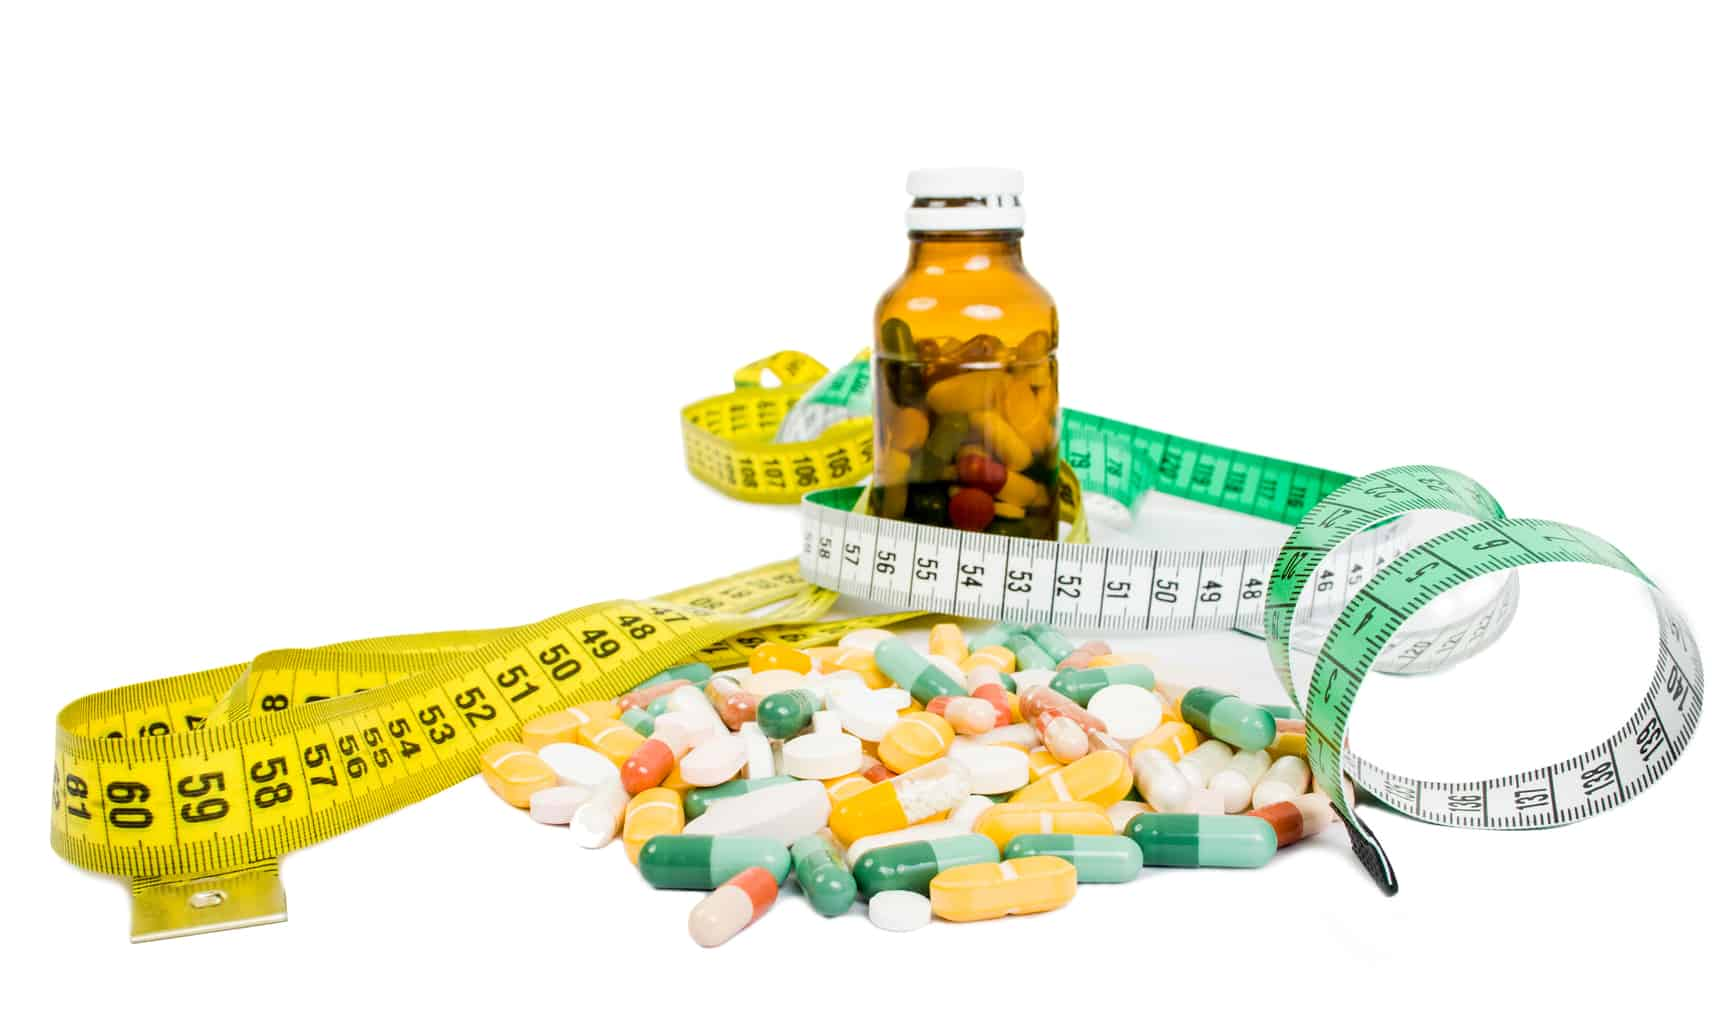 Weight loss prescription drugs phentermine picture 4